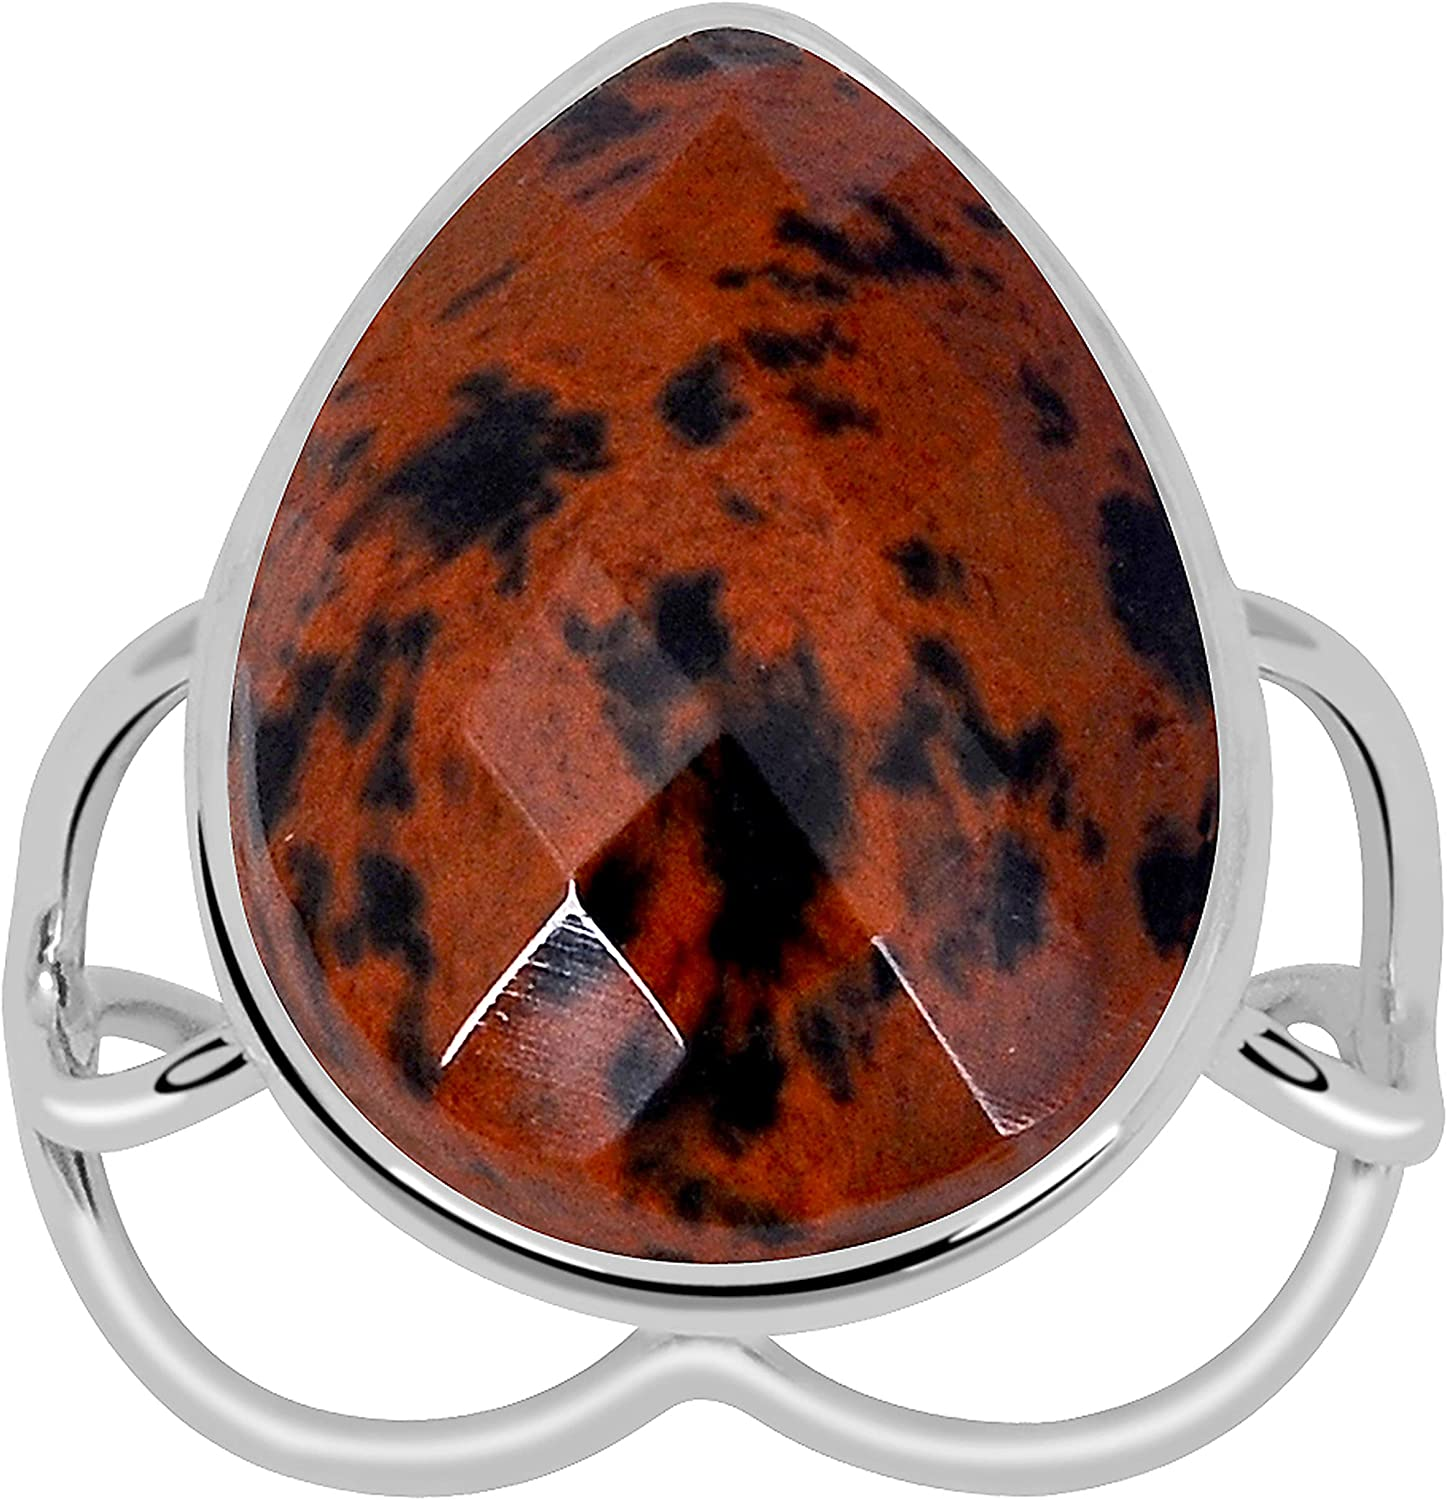 Orchid Jewelry 925 Sterling Silver Red Mahogany Obsidian Anniver